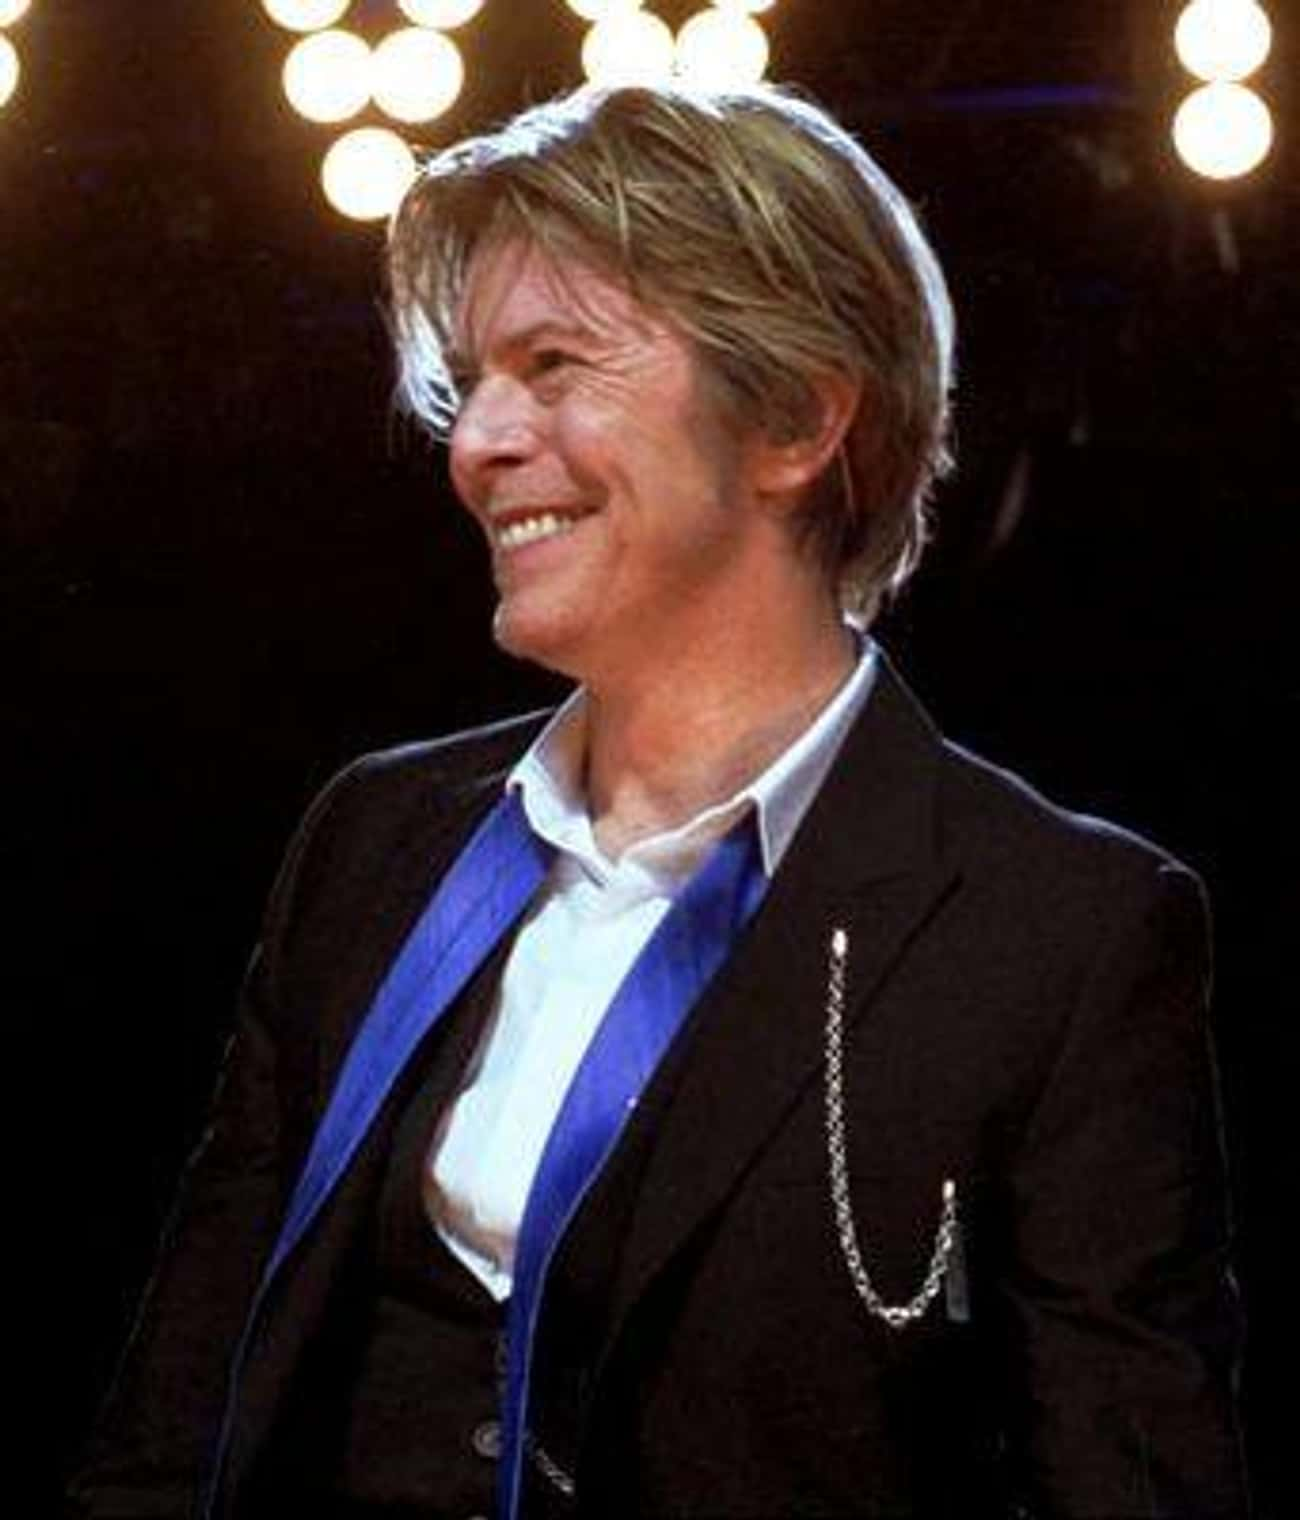 David Bowie is listed (or ranked) 1 on the list 19 Musicians Who Have Written Children's Books